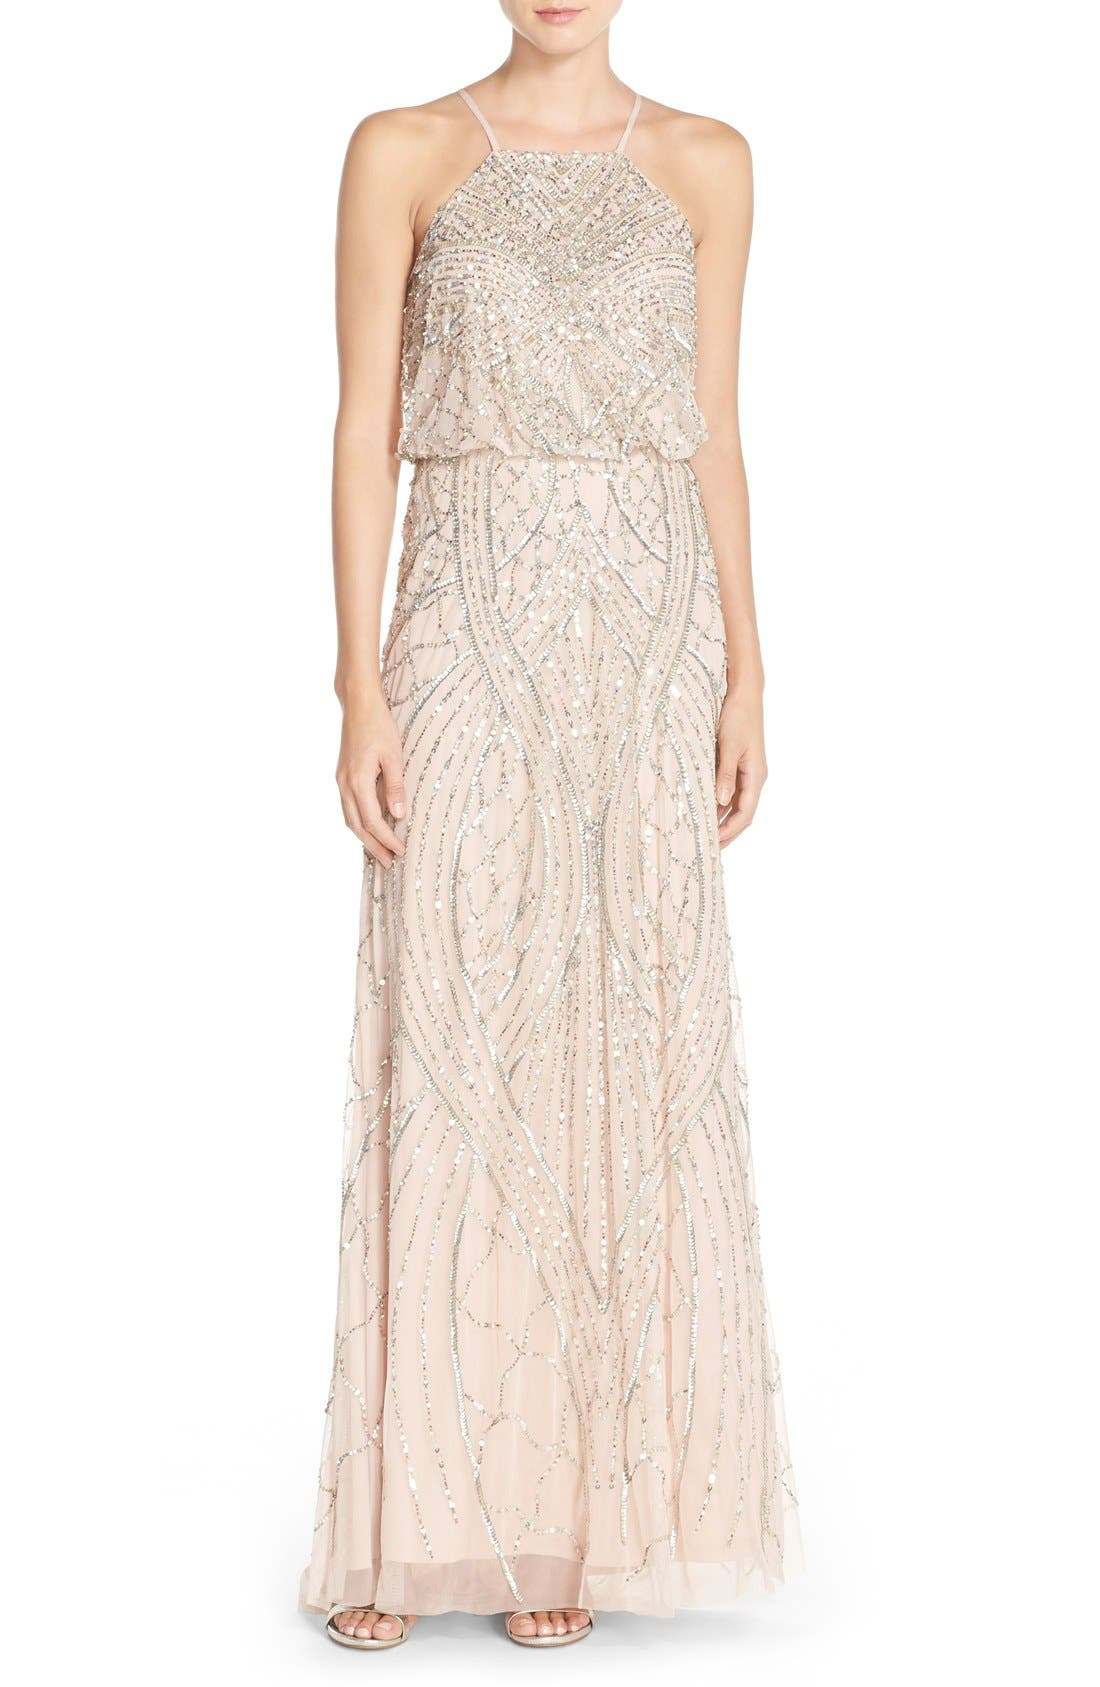 Main Image - Adrianna Papell Sequin Chiffon Blouson Gown